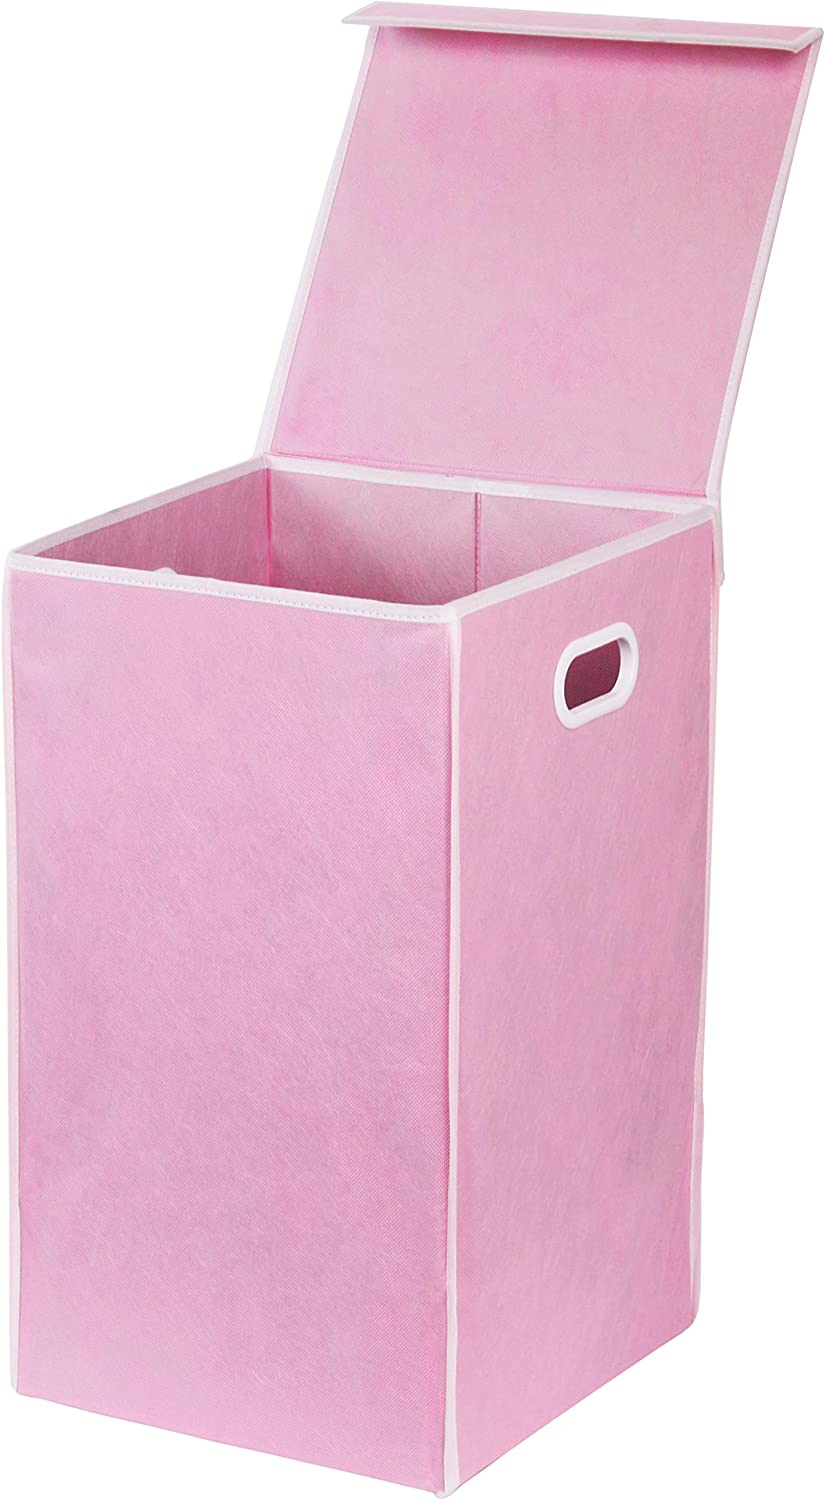 Simple Houseware Foldable Laundry Hamper Basket with Lid, Pink